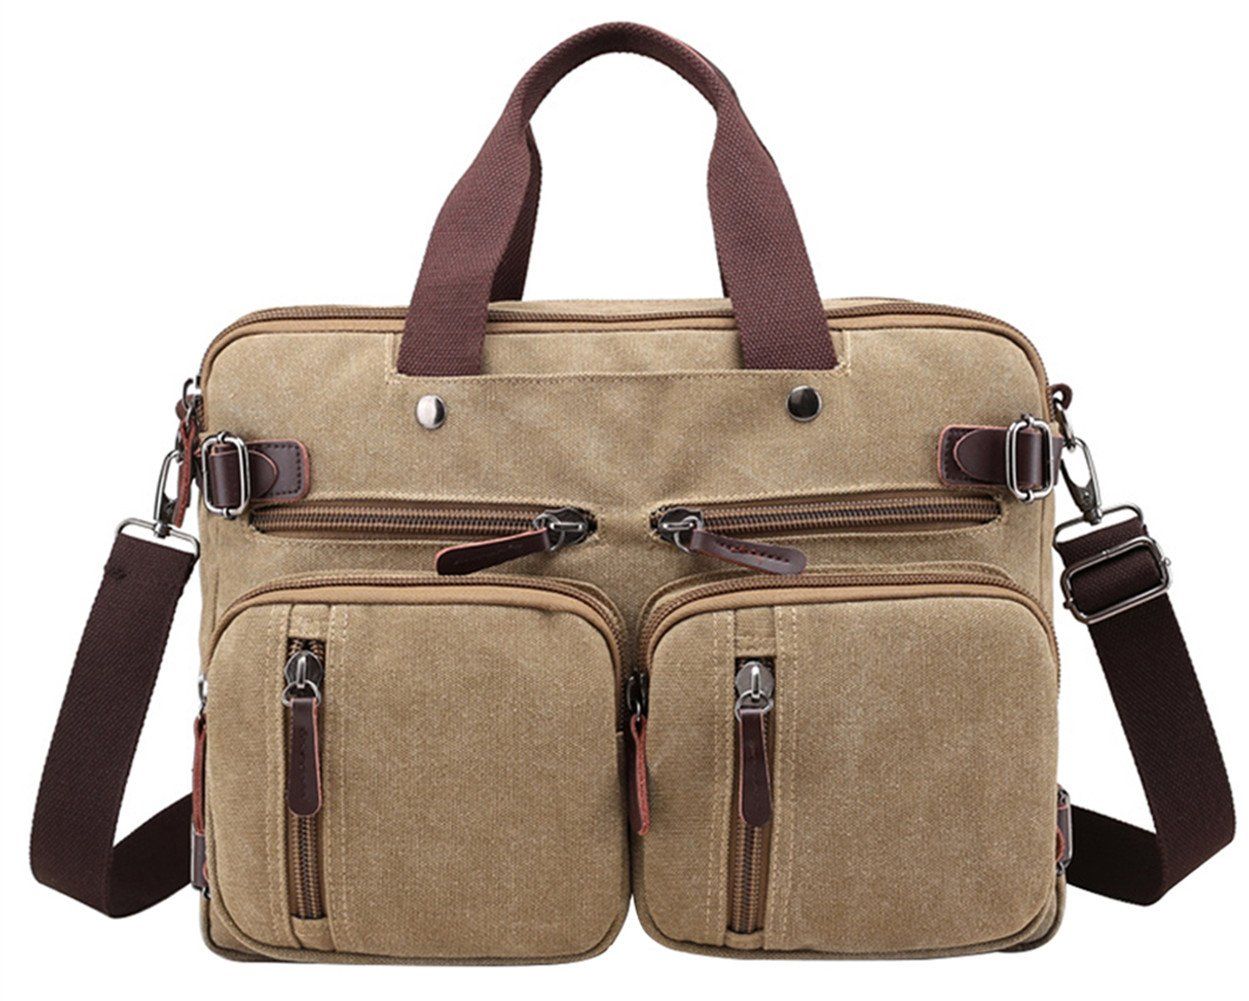 PB-SOAR 4-in-1 Herren Damen Vintage Canvas Multifunktionale Aktentasche Arbeitstasche Rucksack Umhängetasche Messenger Bag Laptoptasche Wickeltasche Vielseitige Tasche (Braun)